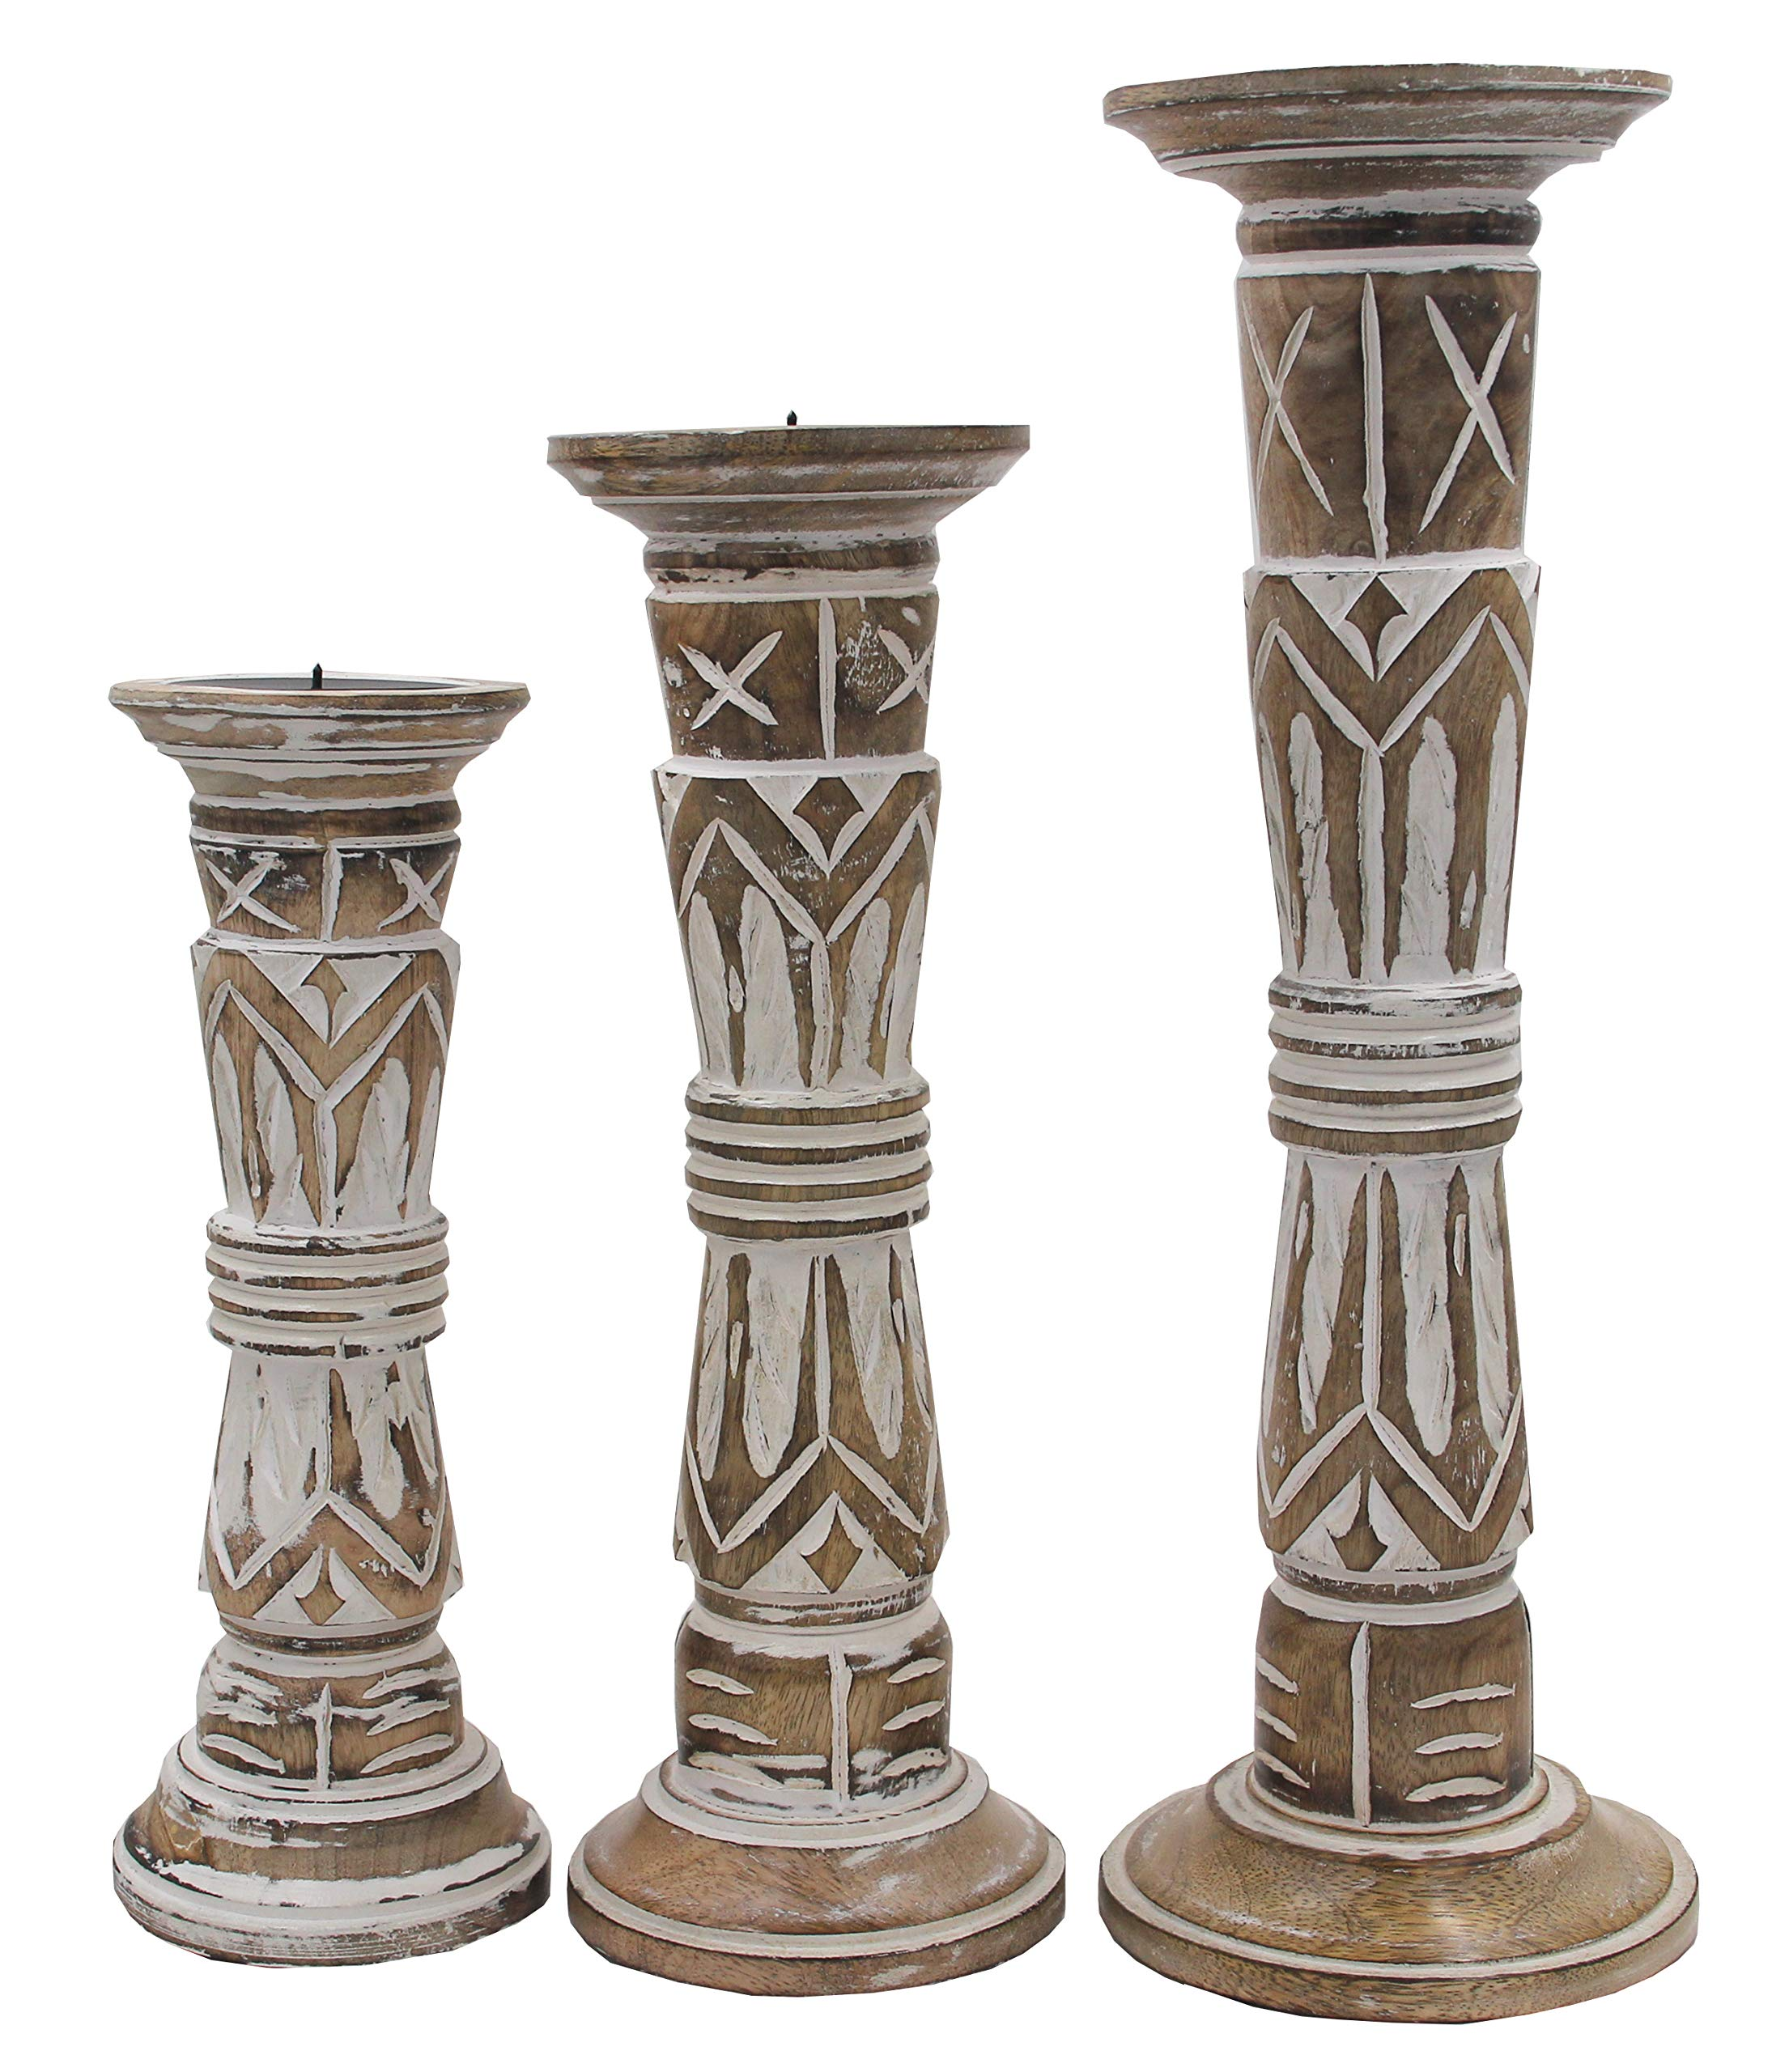 Dharmaobjects Set of 3 Wooden Candle Holders - Height 17'', 14'', 12'' (White)